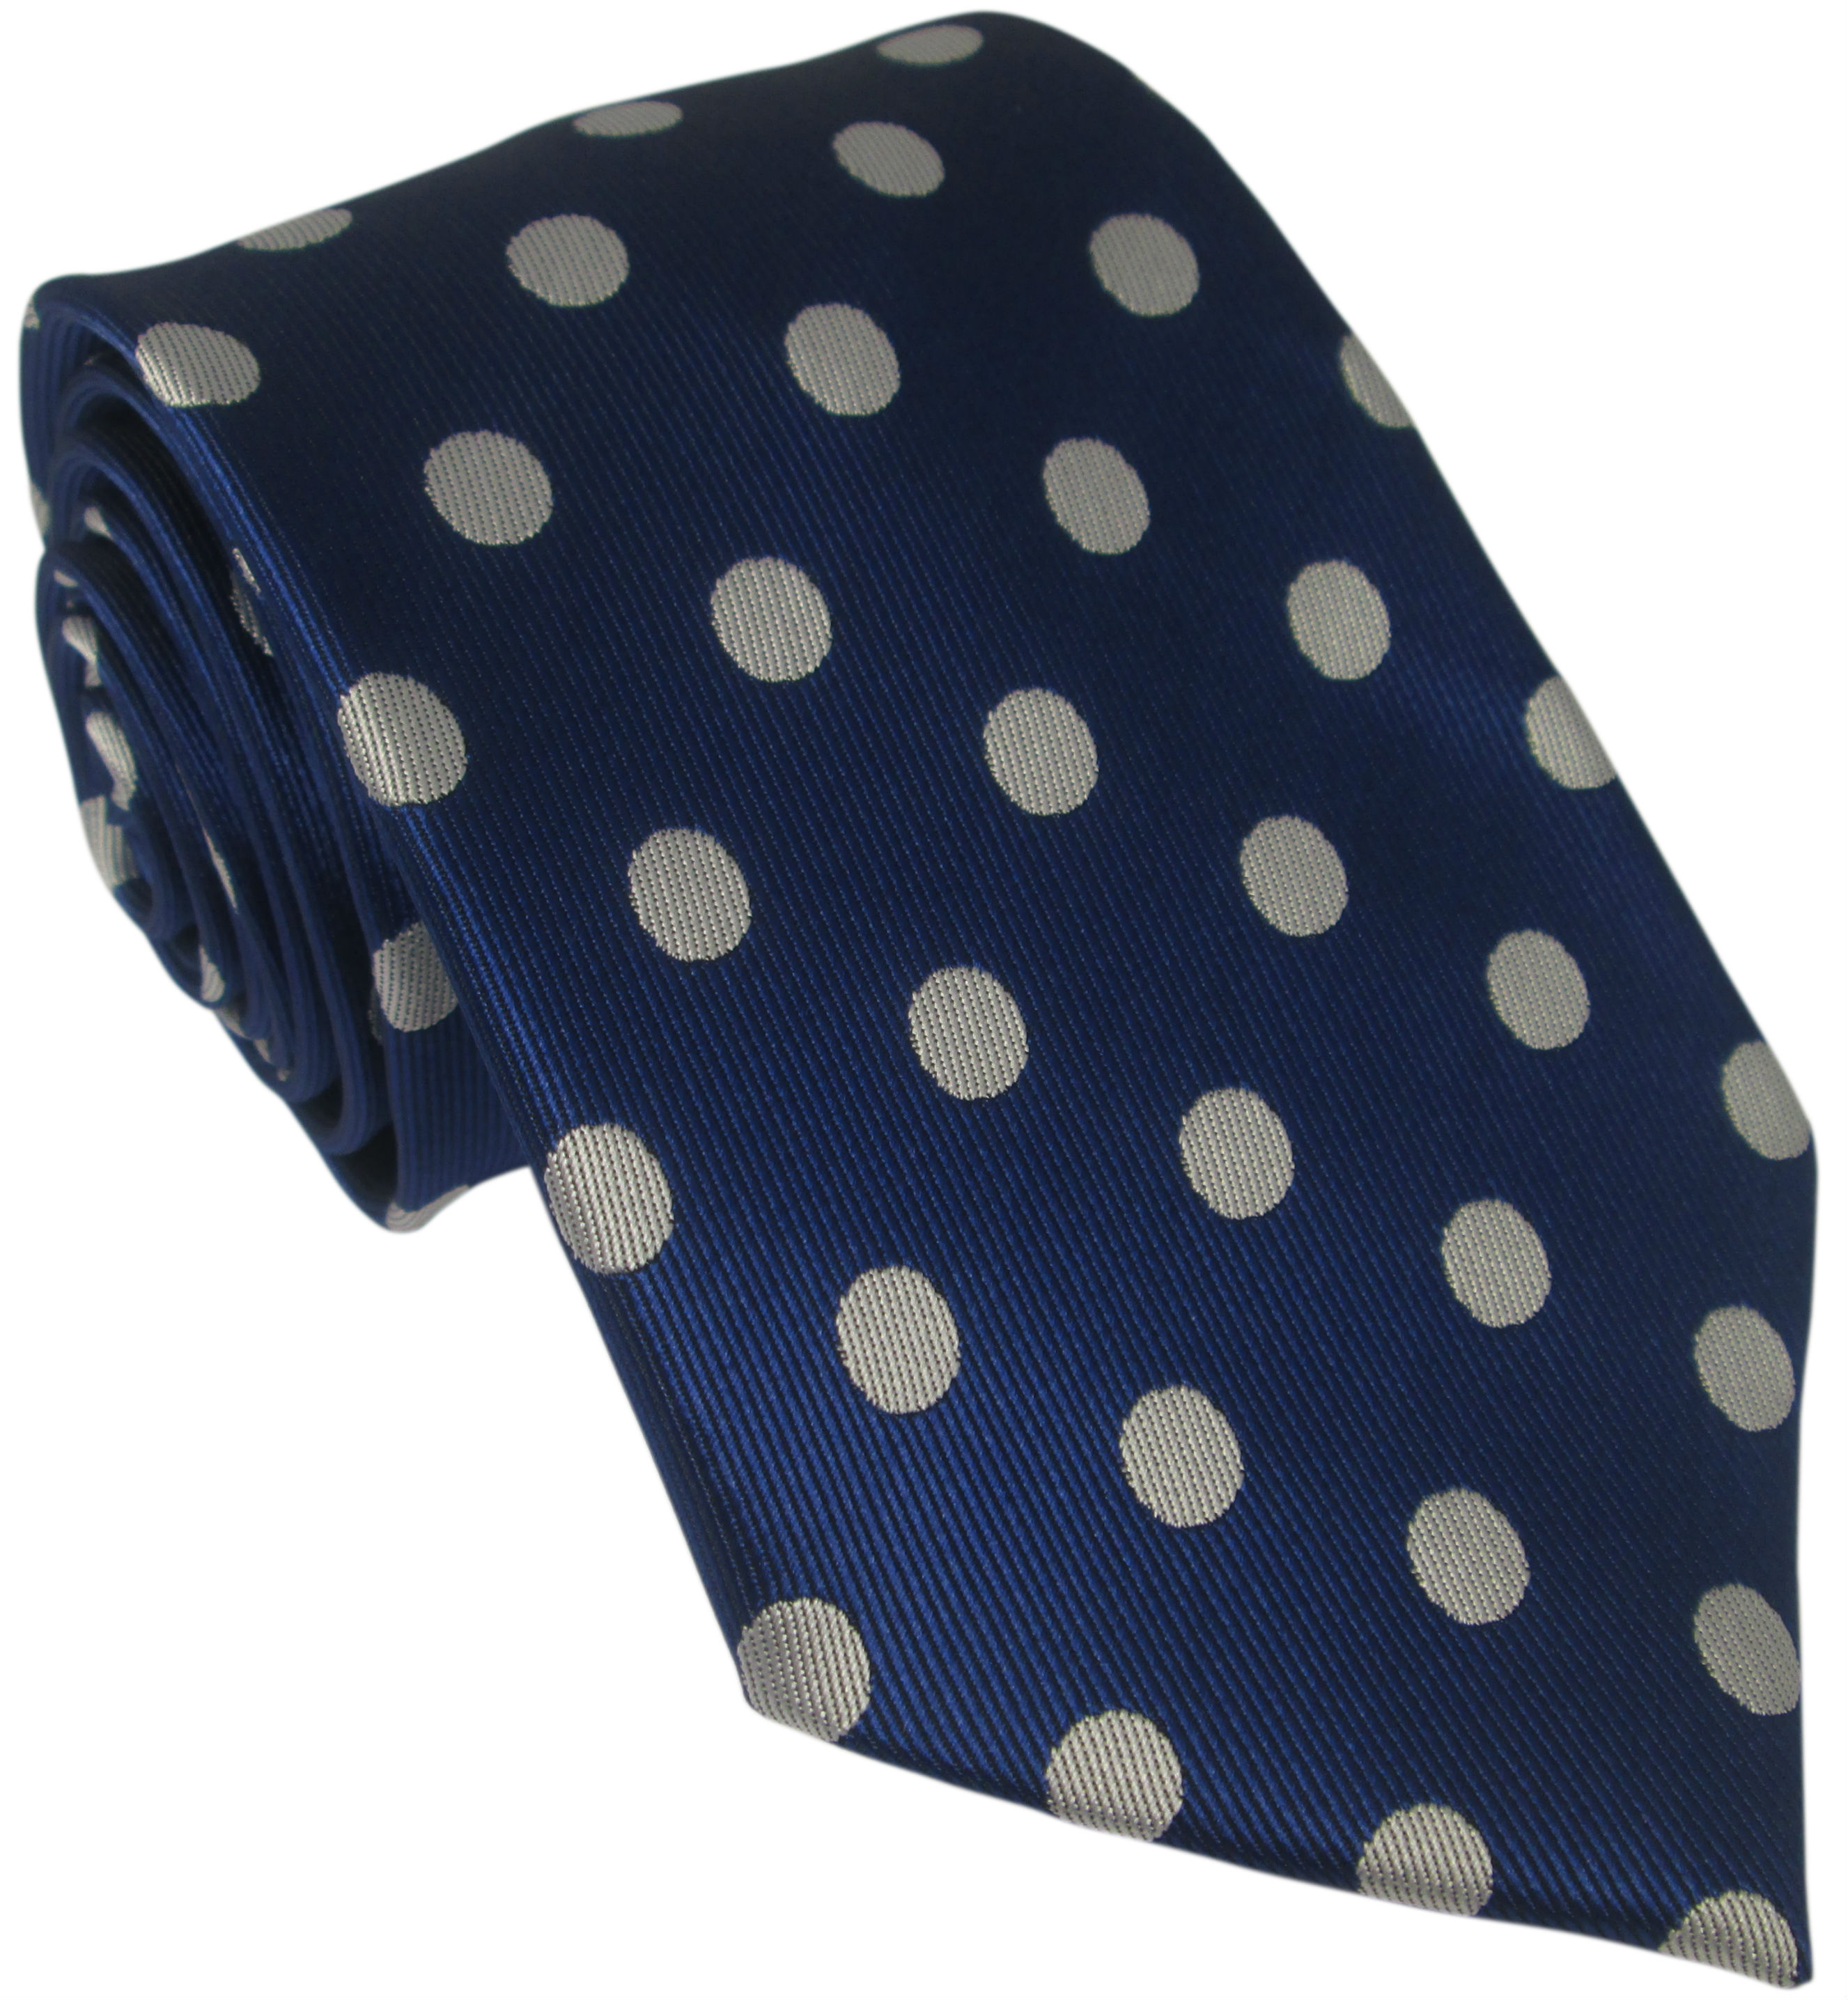 Blue Silk Tie with Large White Polka Dot